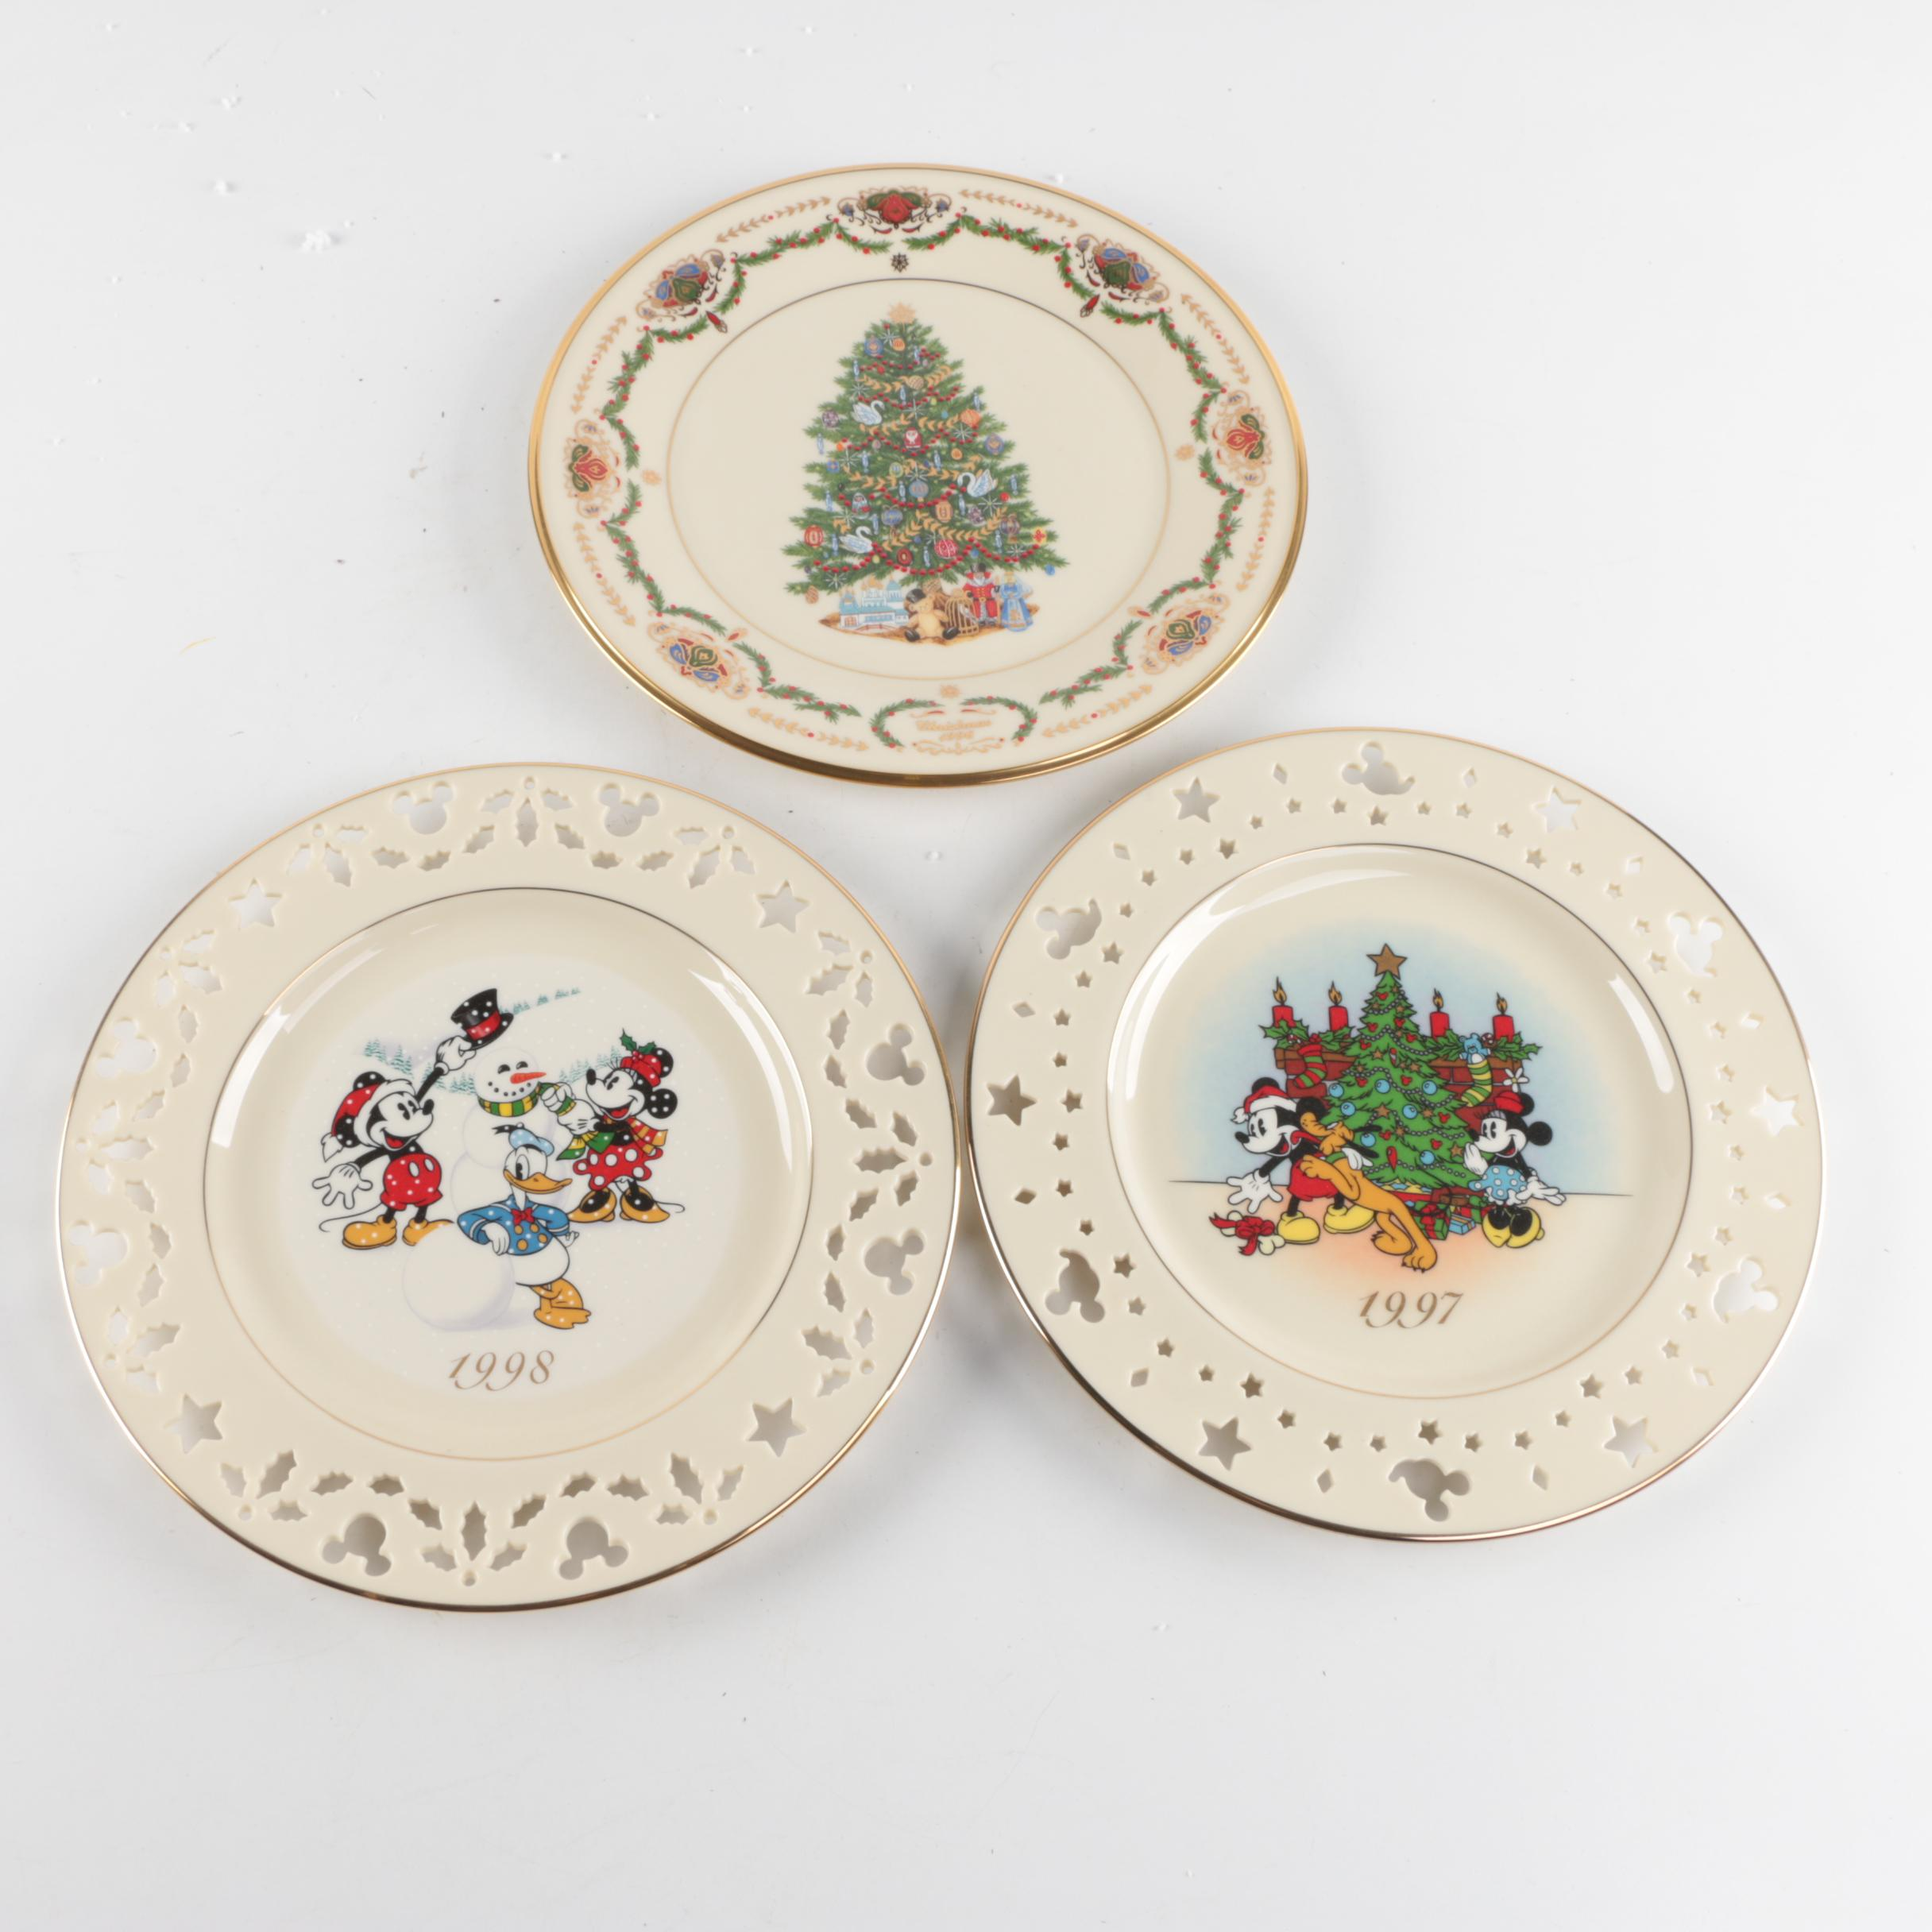 Collection of Lenox Christmas Plates including Disney : EBTH